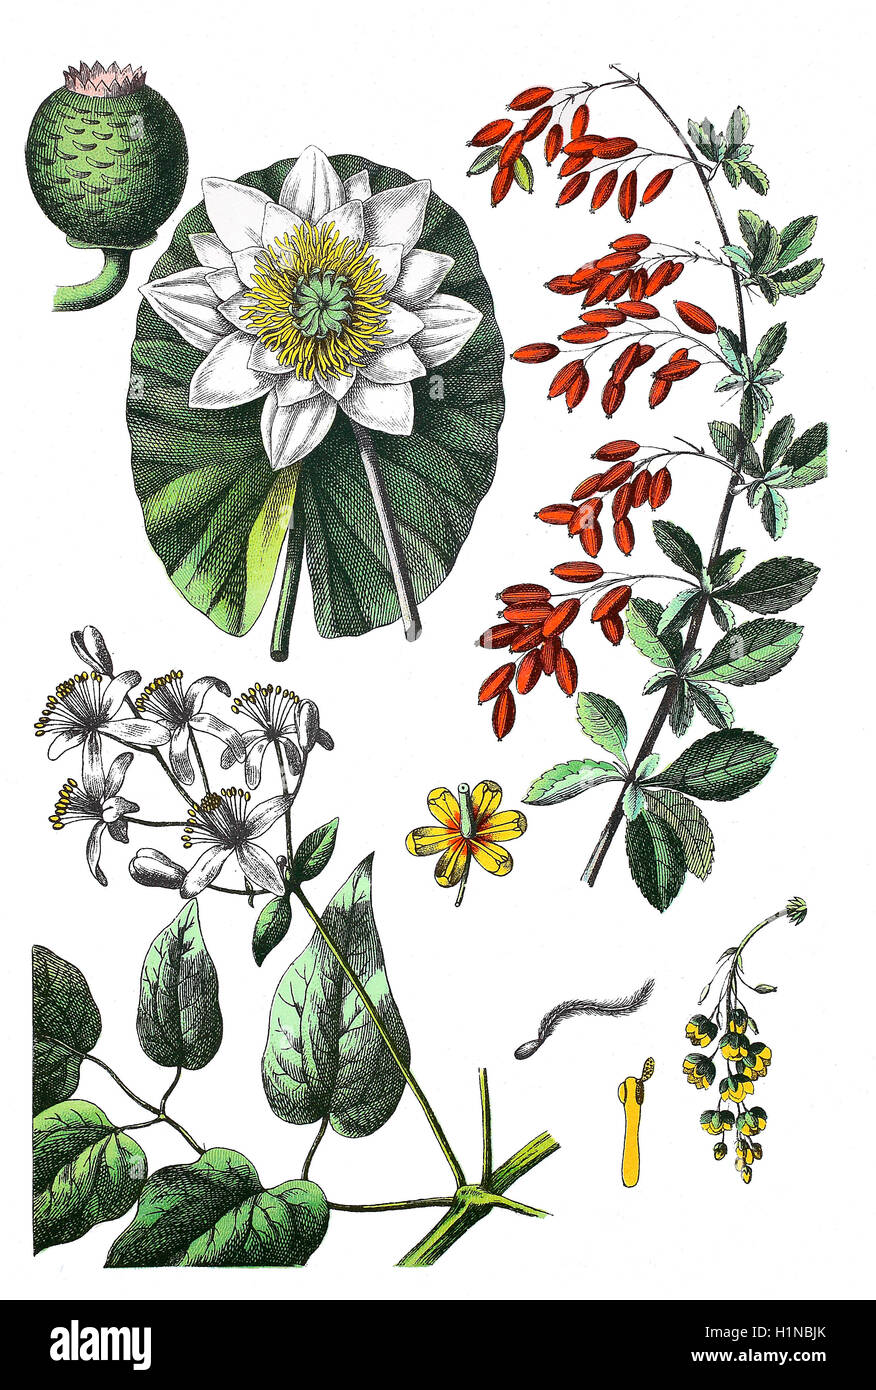 European white water lily, white water rose, Nymphaea alba (top left), common barberry, Berberis vulgaris (right), - Stock Image